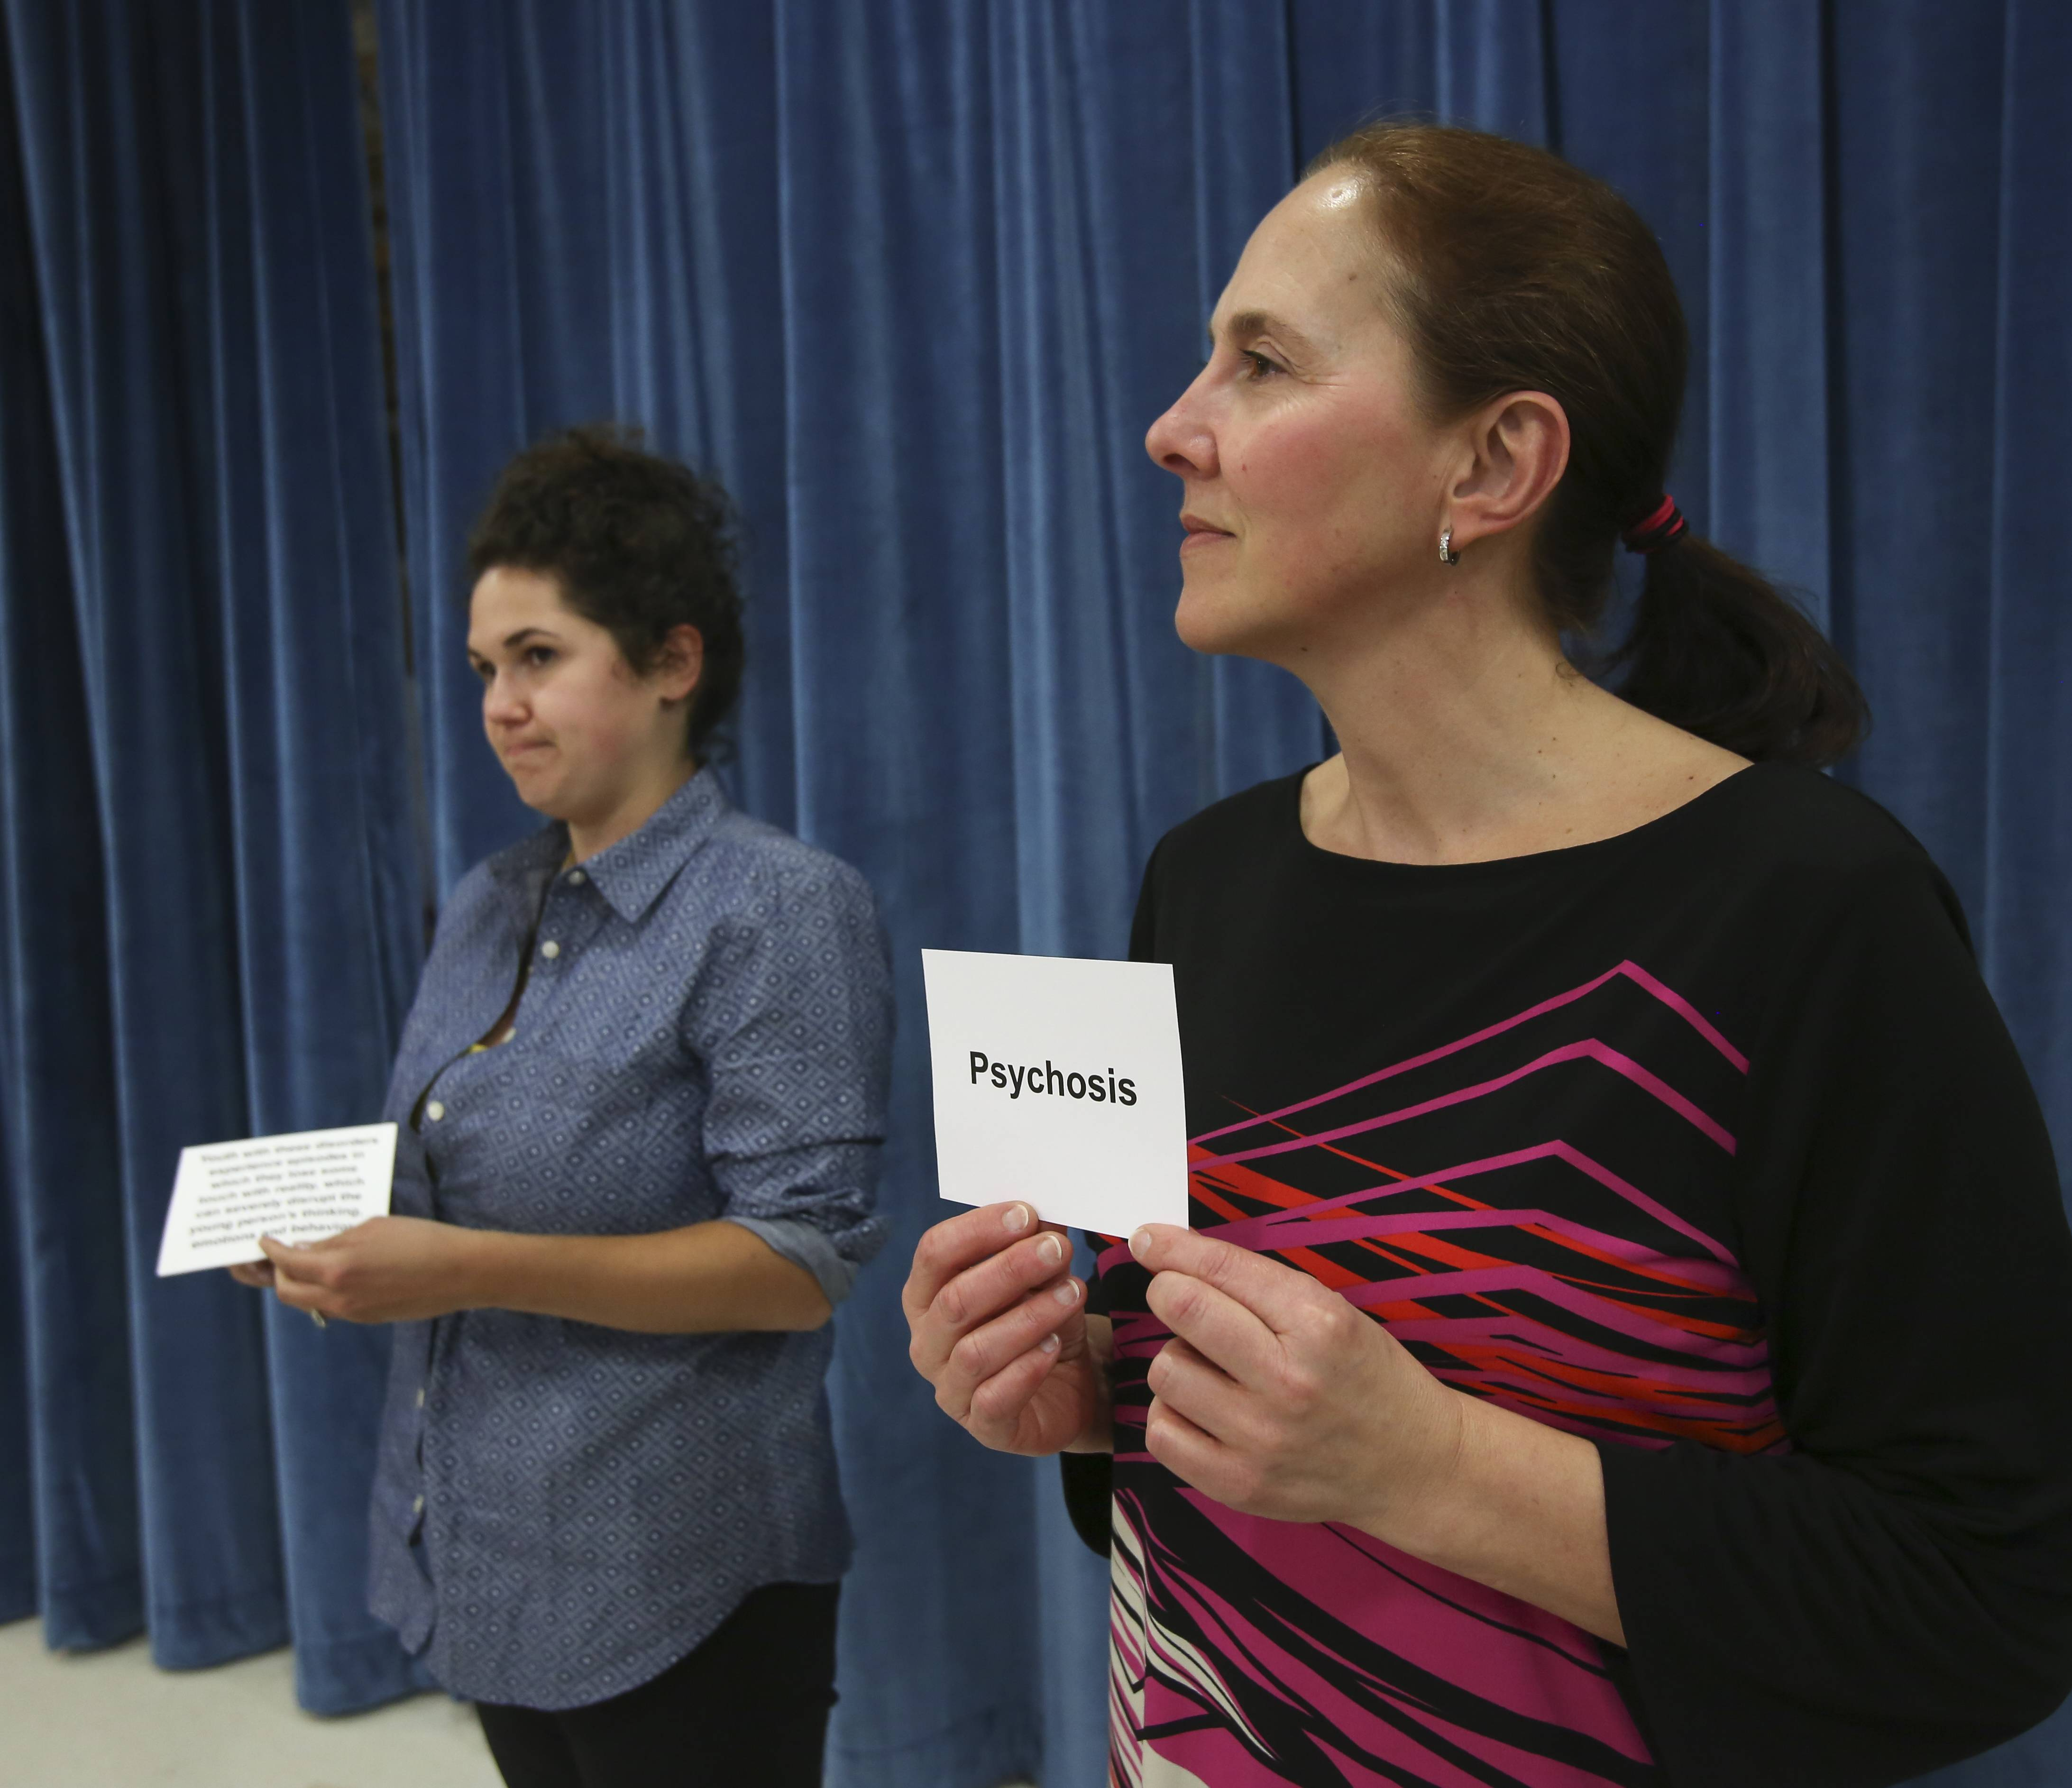 Mental Health First Aid participants Dolores Lago Gonzalez, right, and Brenna Murphy participate in an exercise to identify the likely onset age of different mental health conditions during a recent class in Naperville.